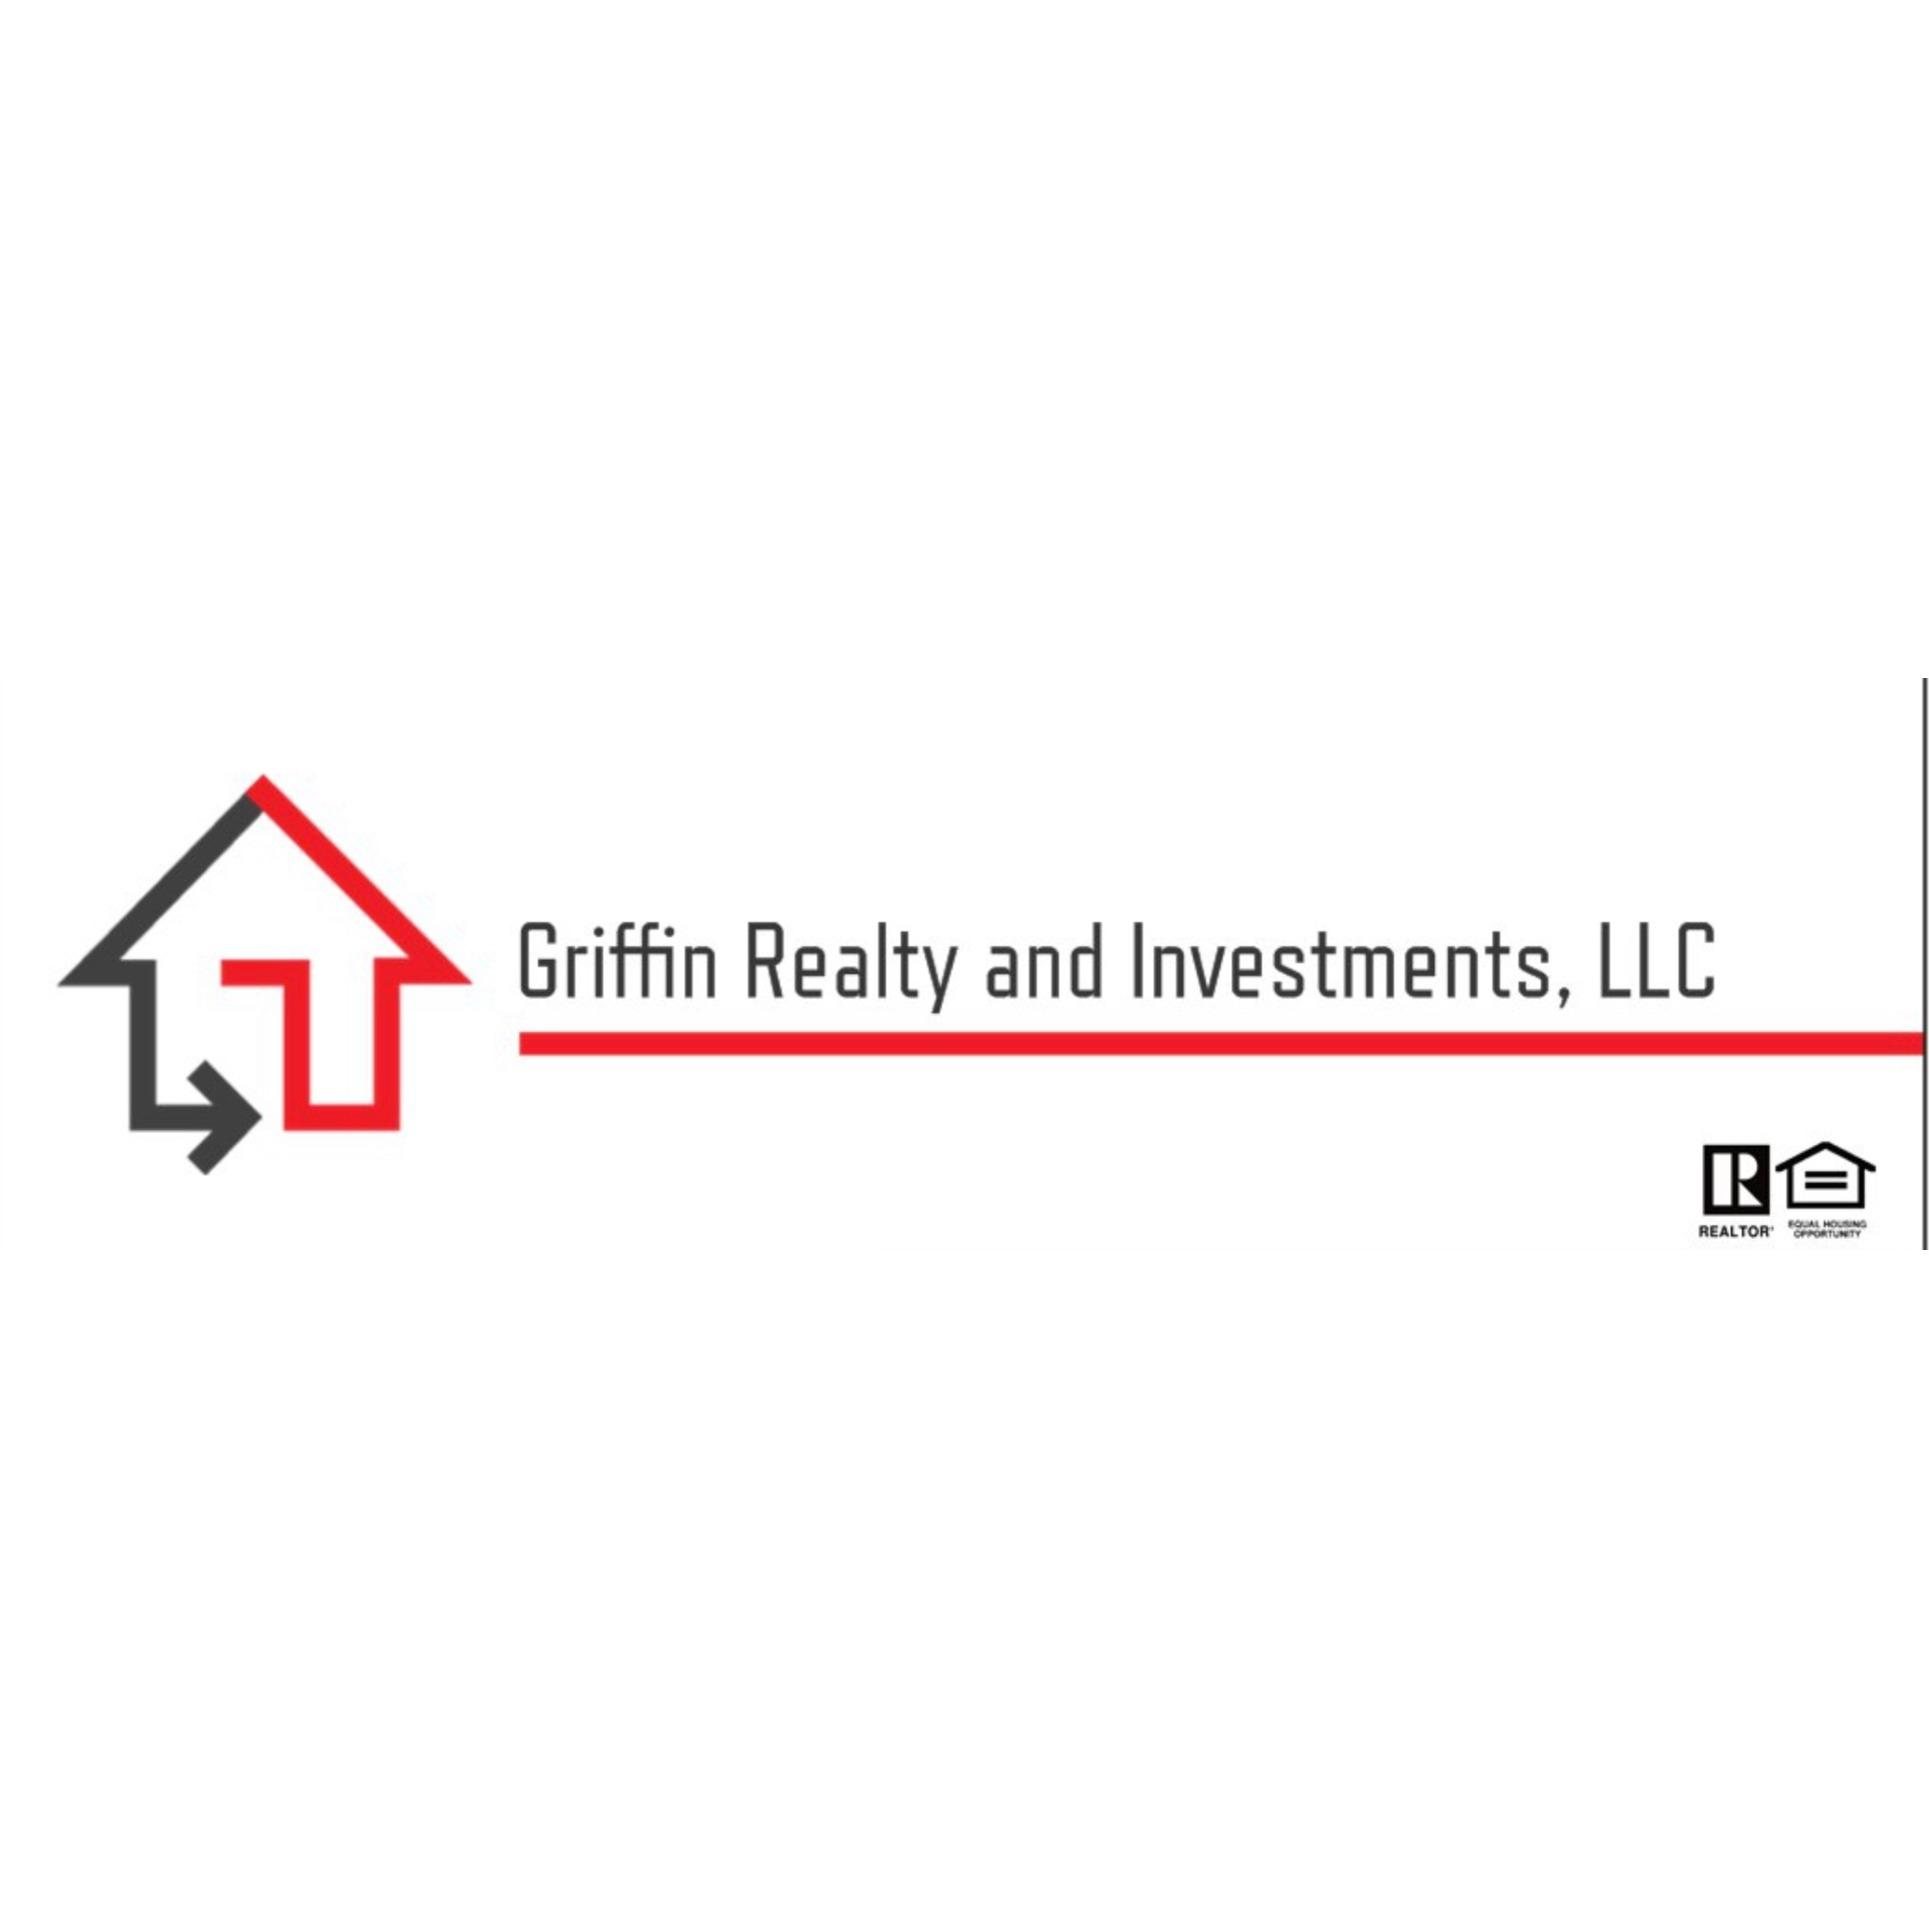 Griffin Realty And Investments